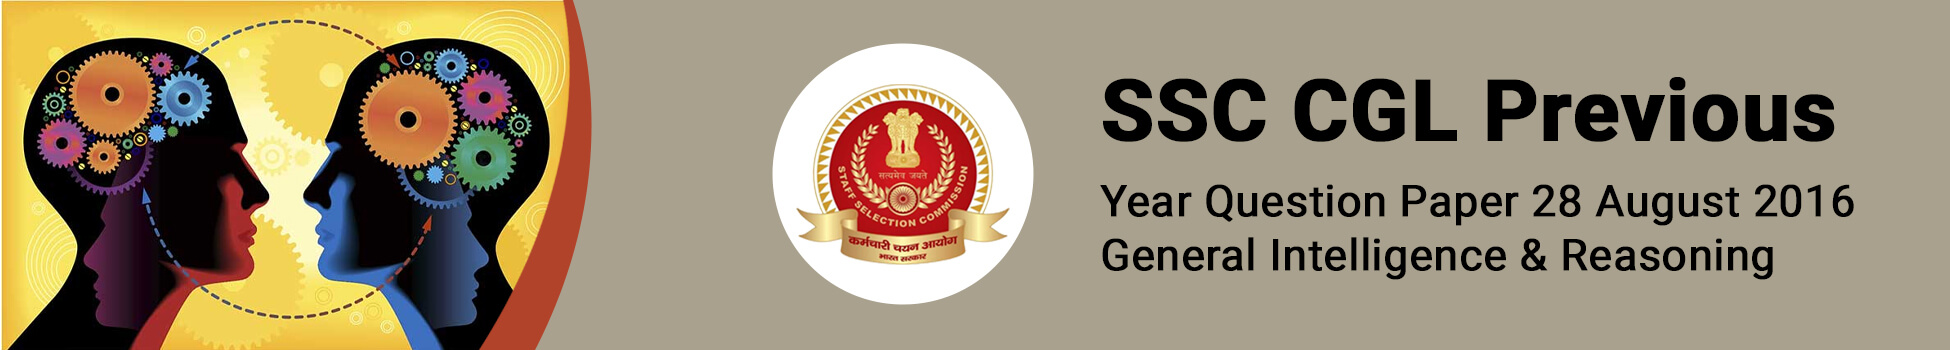 SSC CGL Previous Year Question Paper 28 August 2016 - General Intelligence & Reasoning